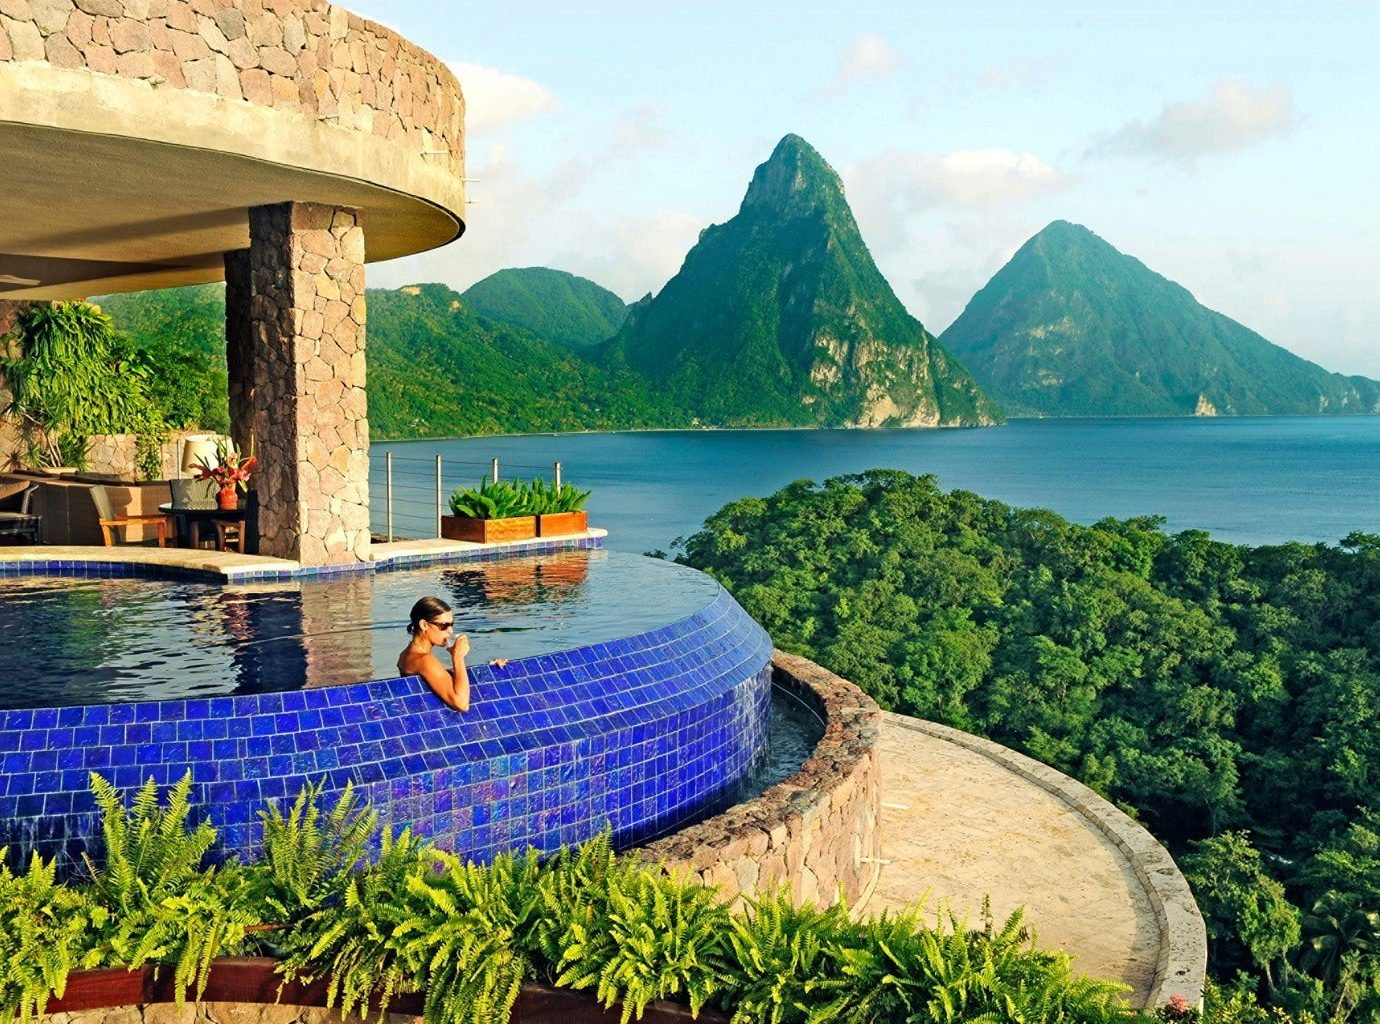 Hotels mountain water sky outdoor Boat Lake River vacation tourism estate Coast Sea bay Resort background Nature swimming pool floating overlooking surrounded